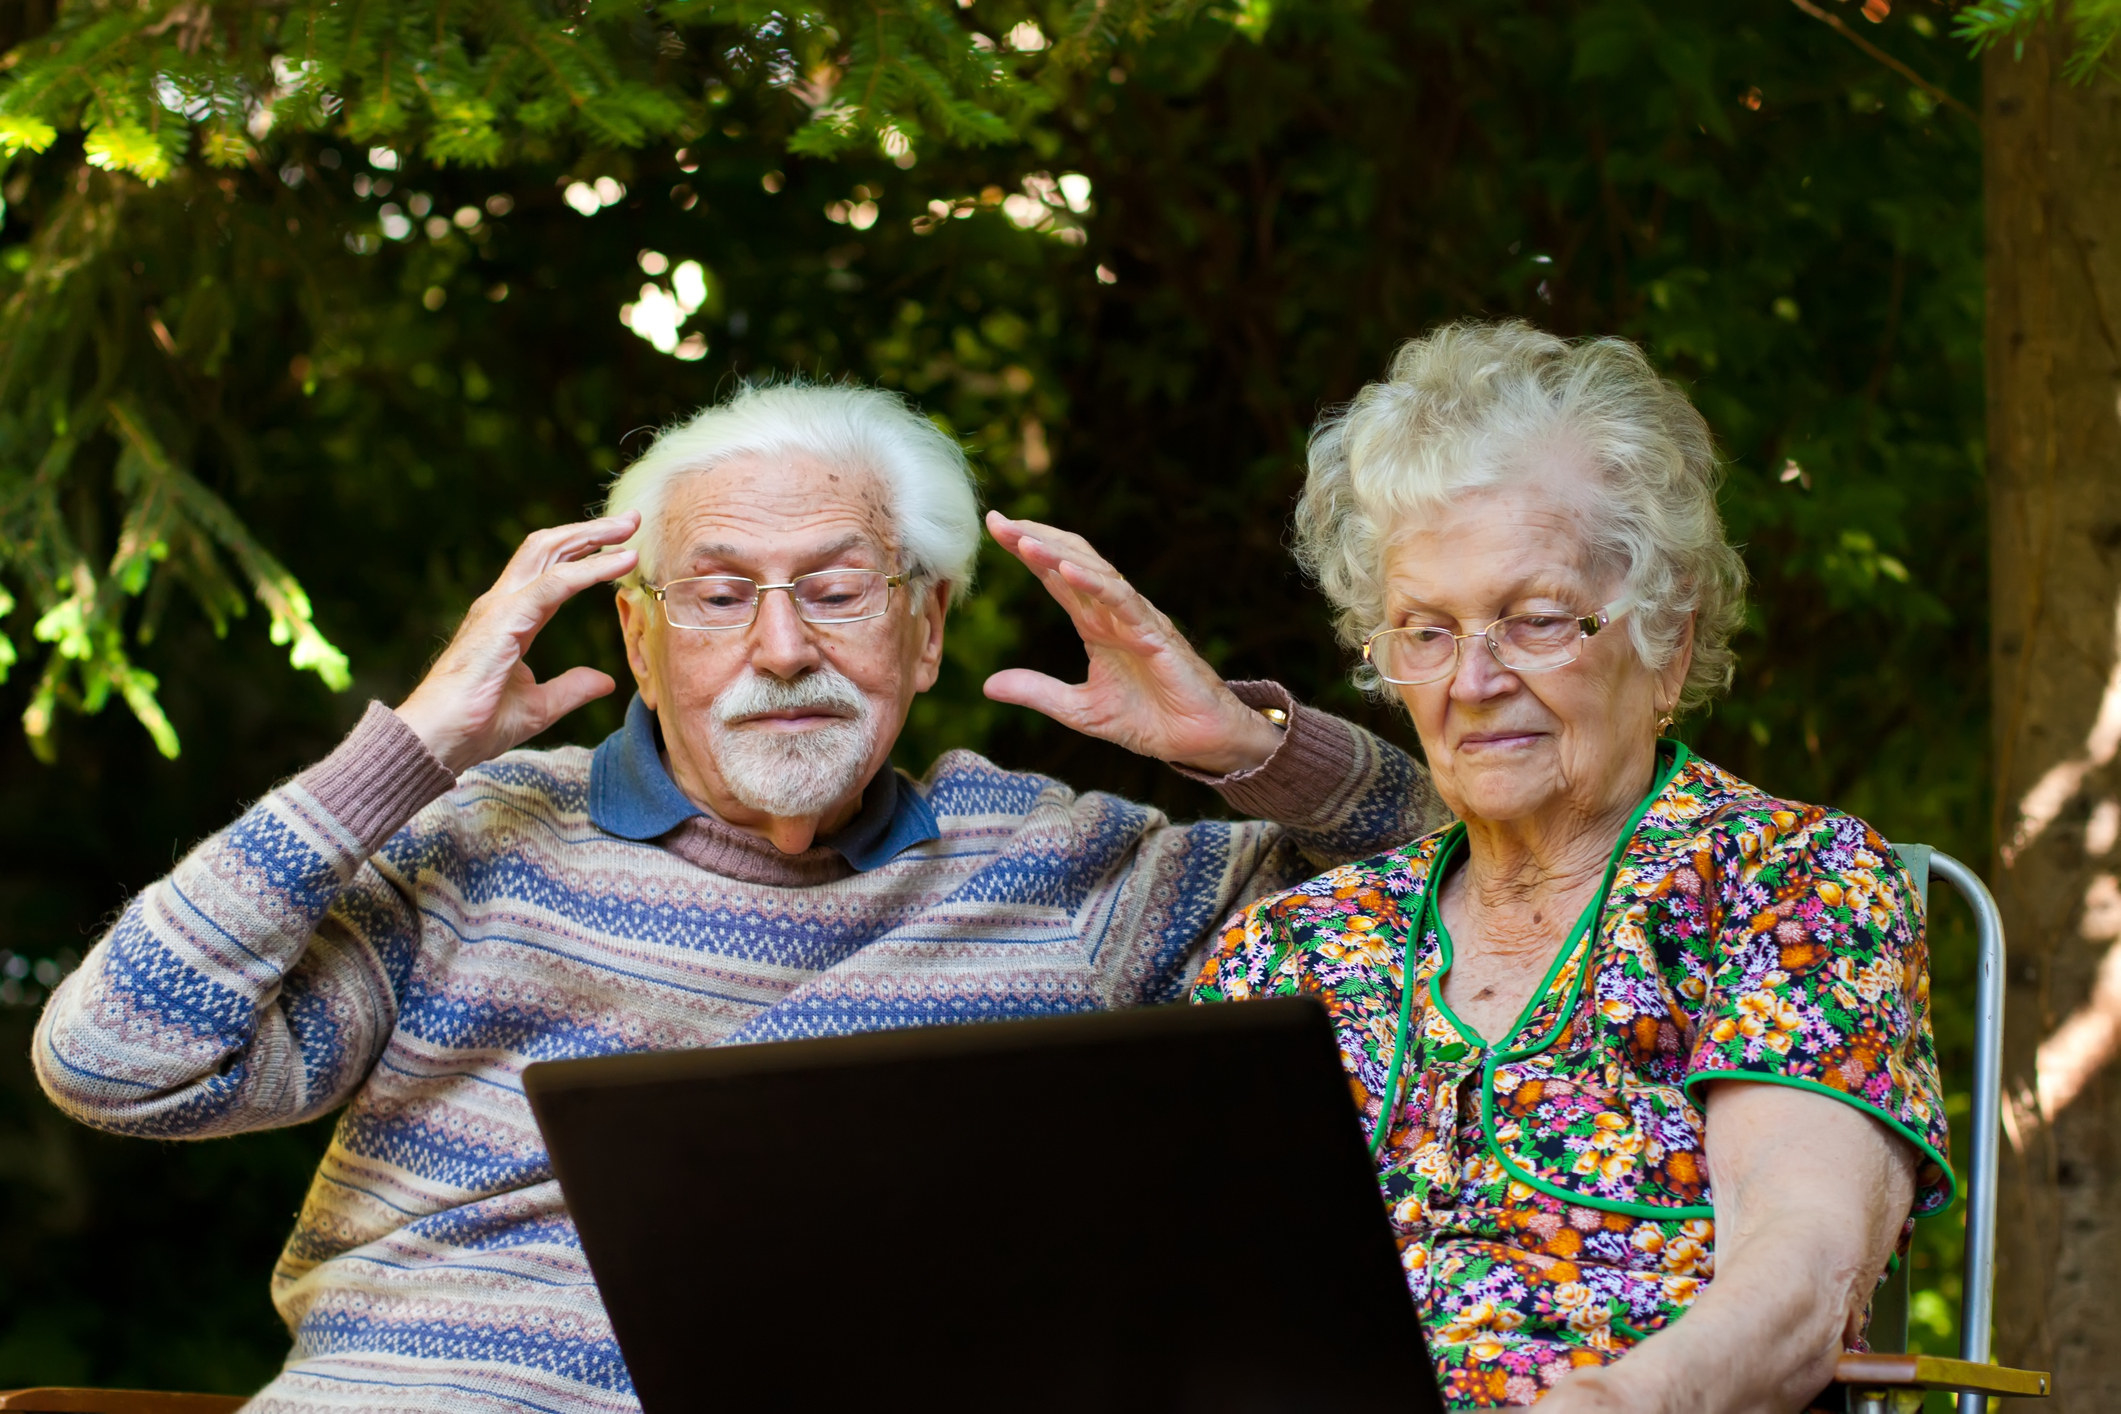 confused random old people that have nothing to do with the post